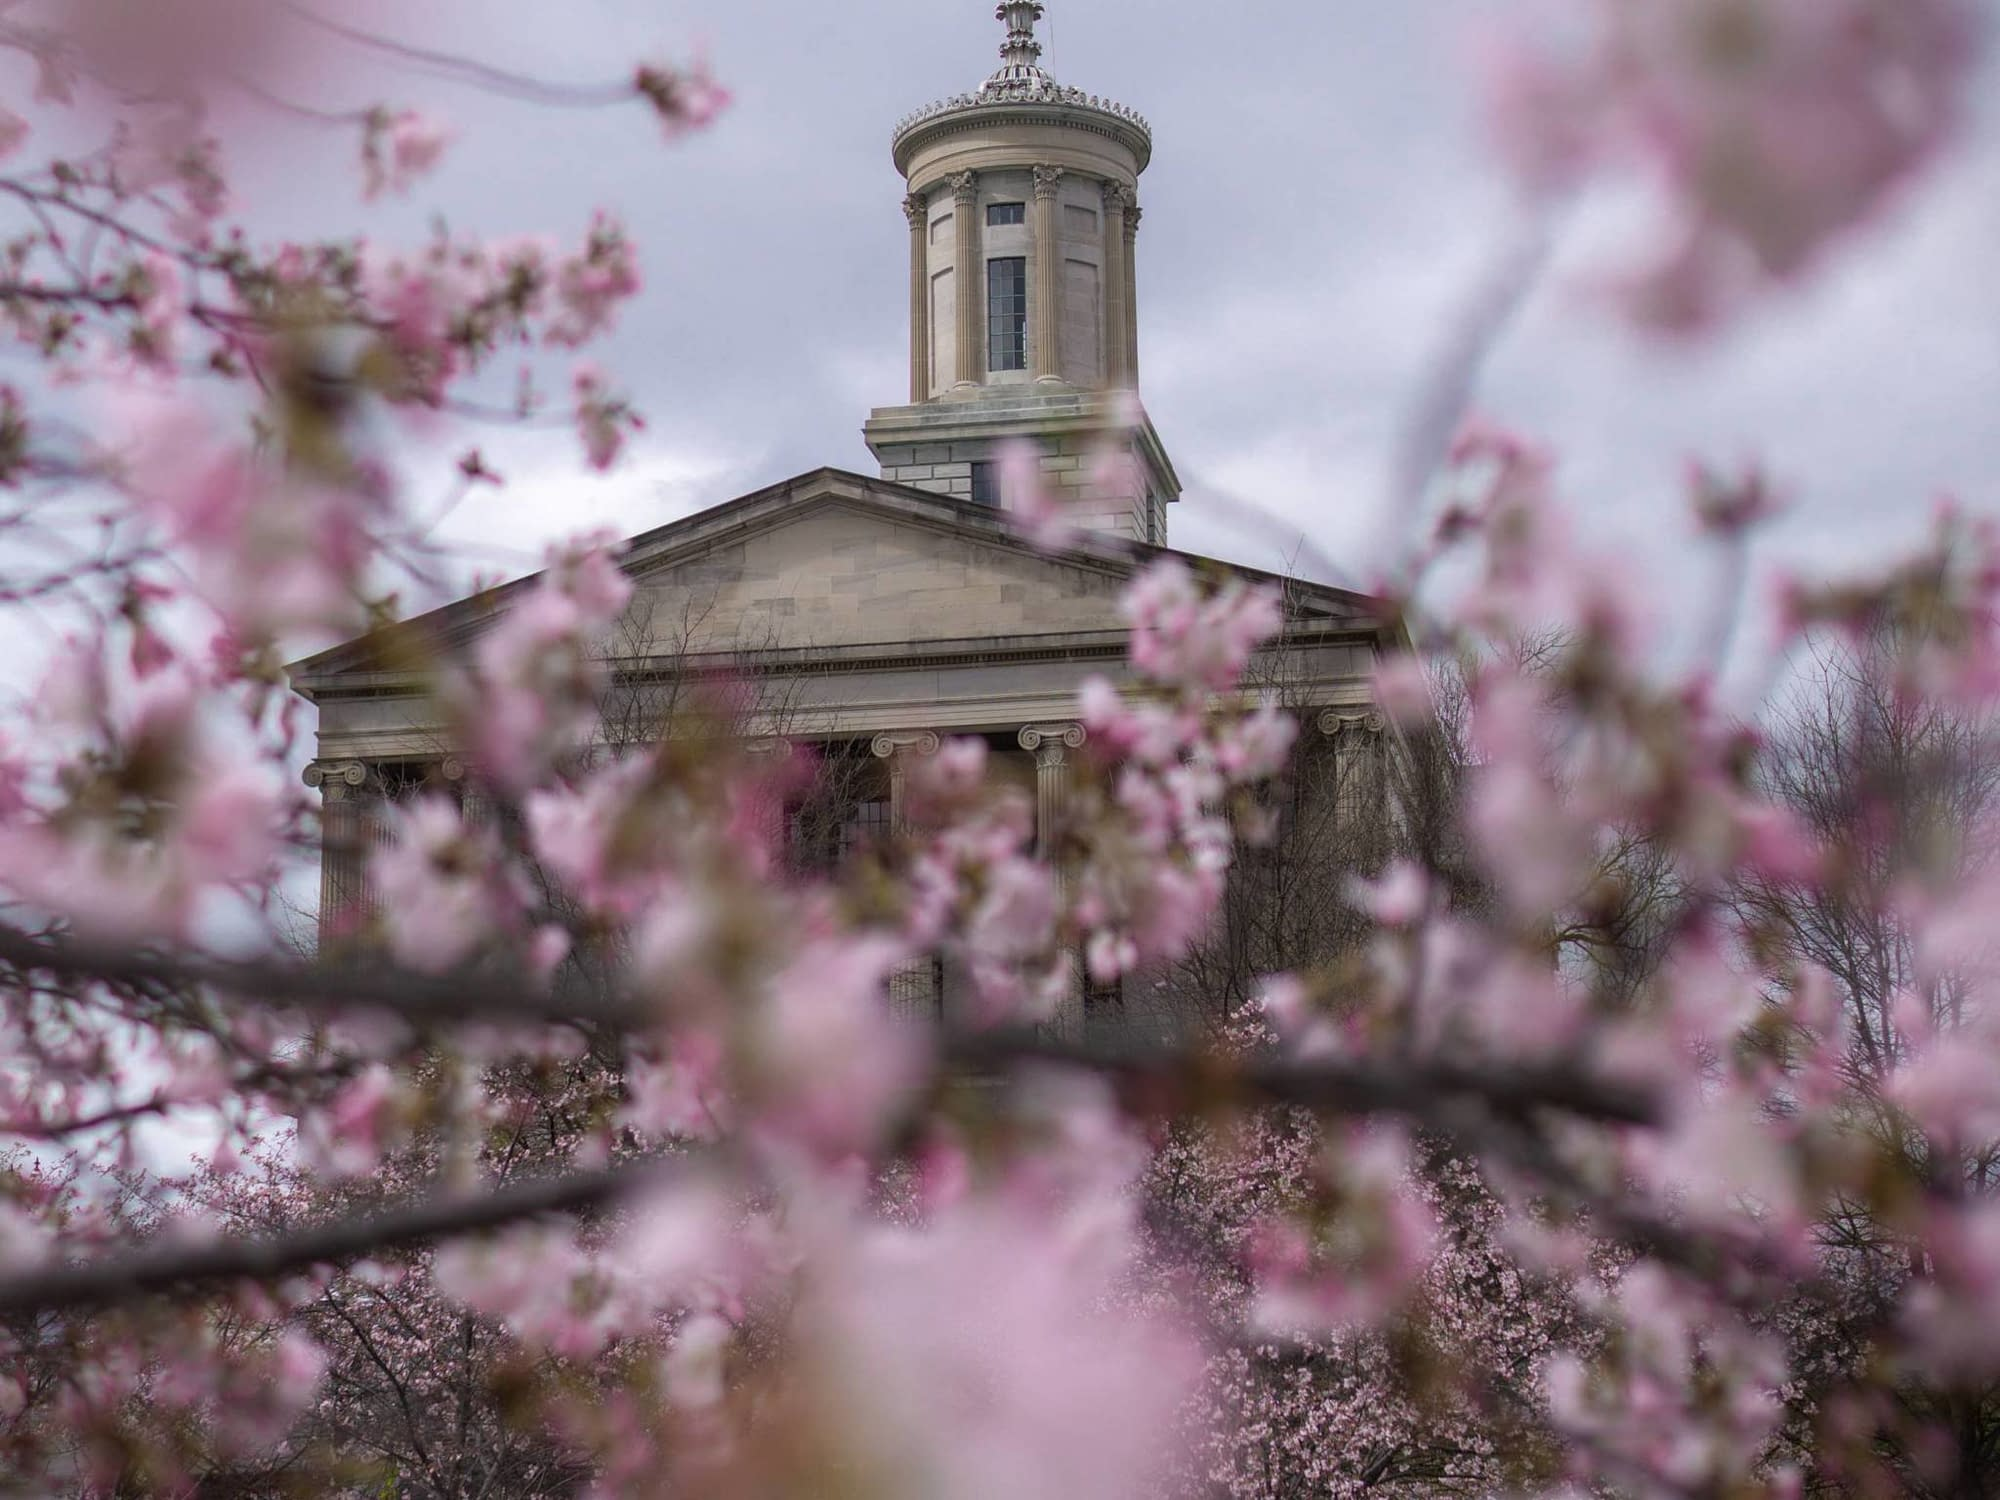 An awesome shot of the State Capital in Nashville covered by cherry blossoms